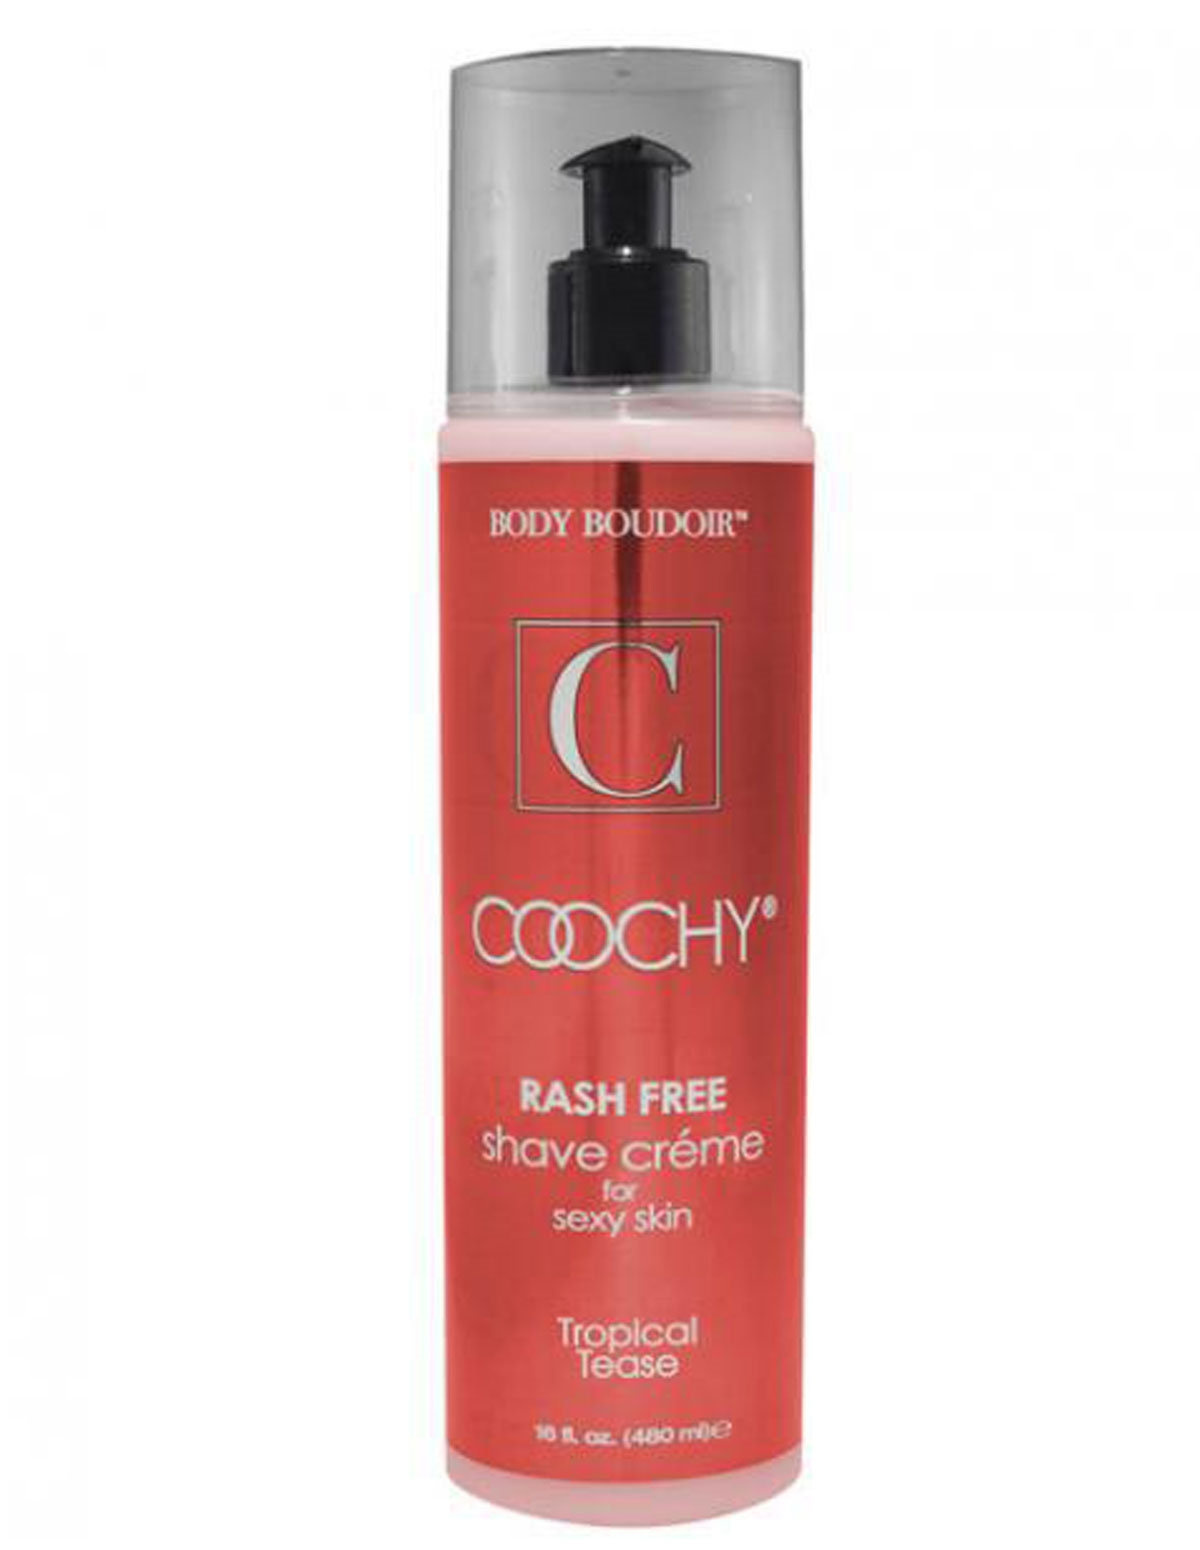 Coochy Tropical Tease 16Oz Shave Cream